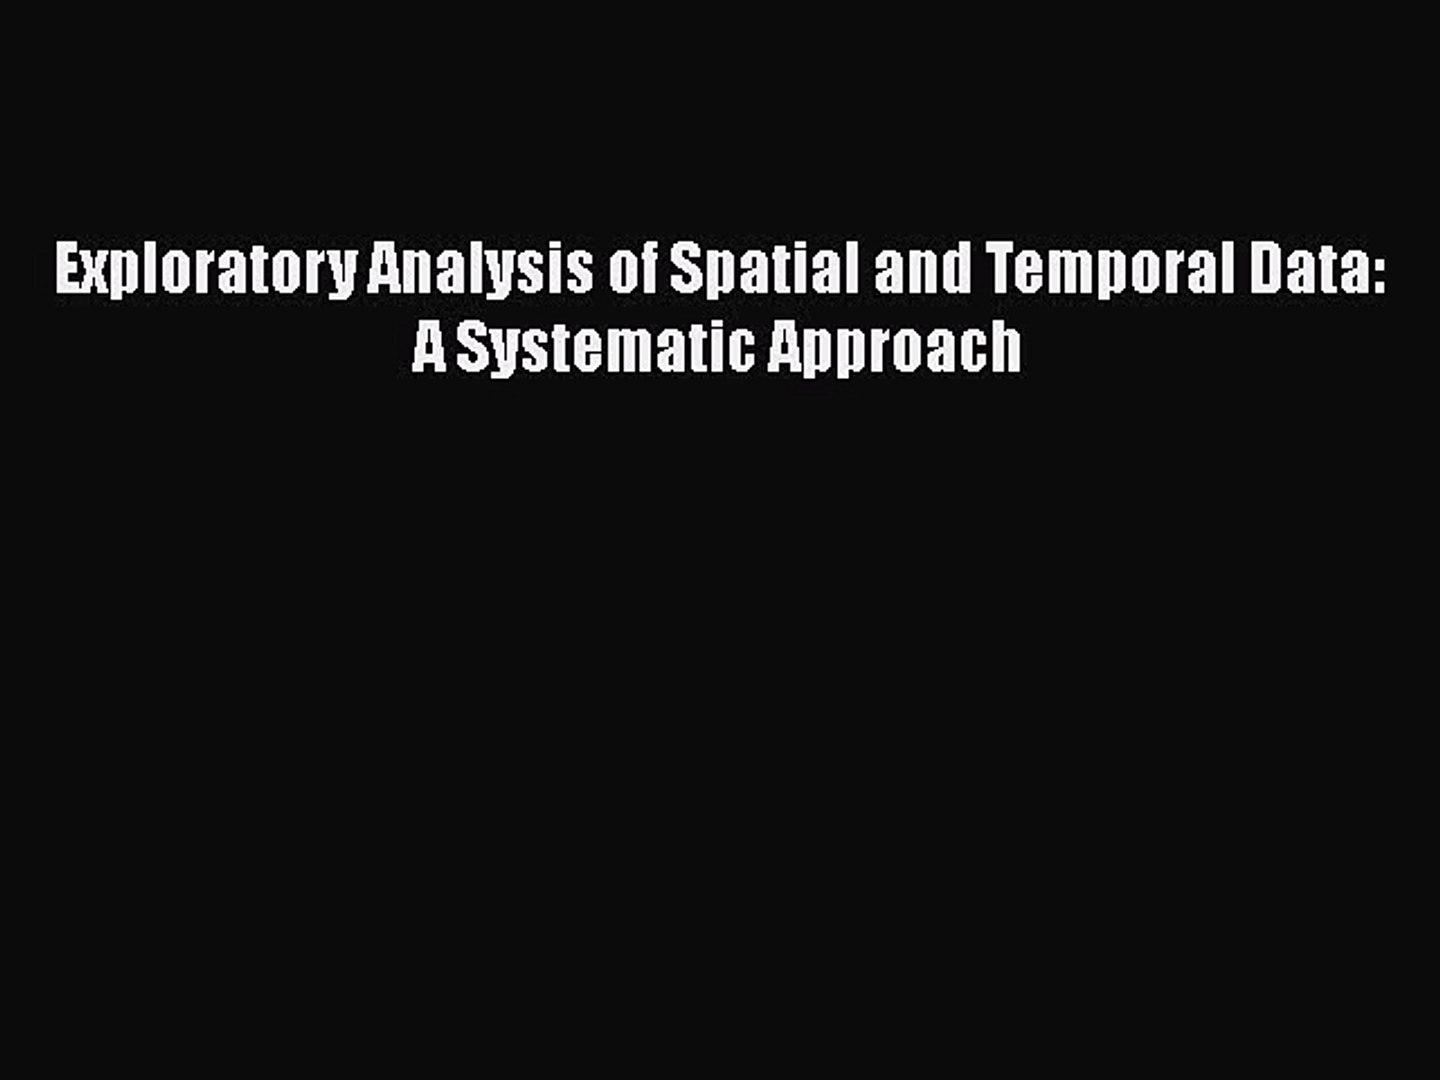 Exploratory Analysis of Spatial and Temporal Data: A Systematic Approach